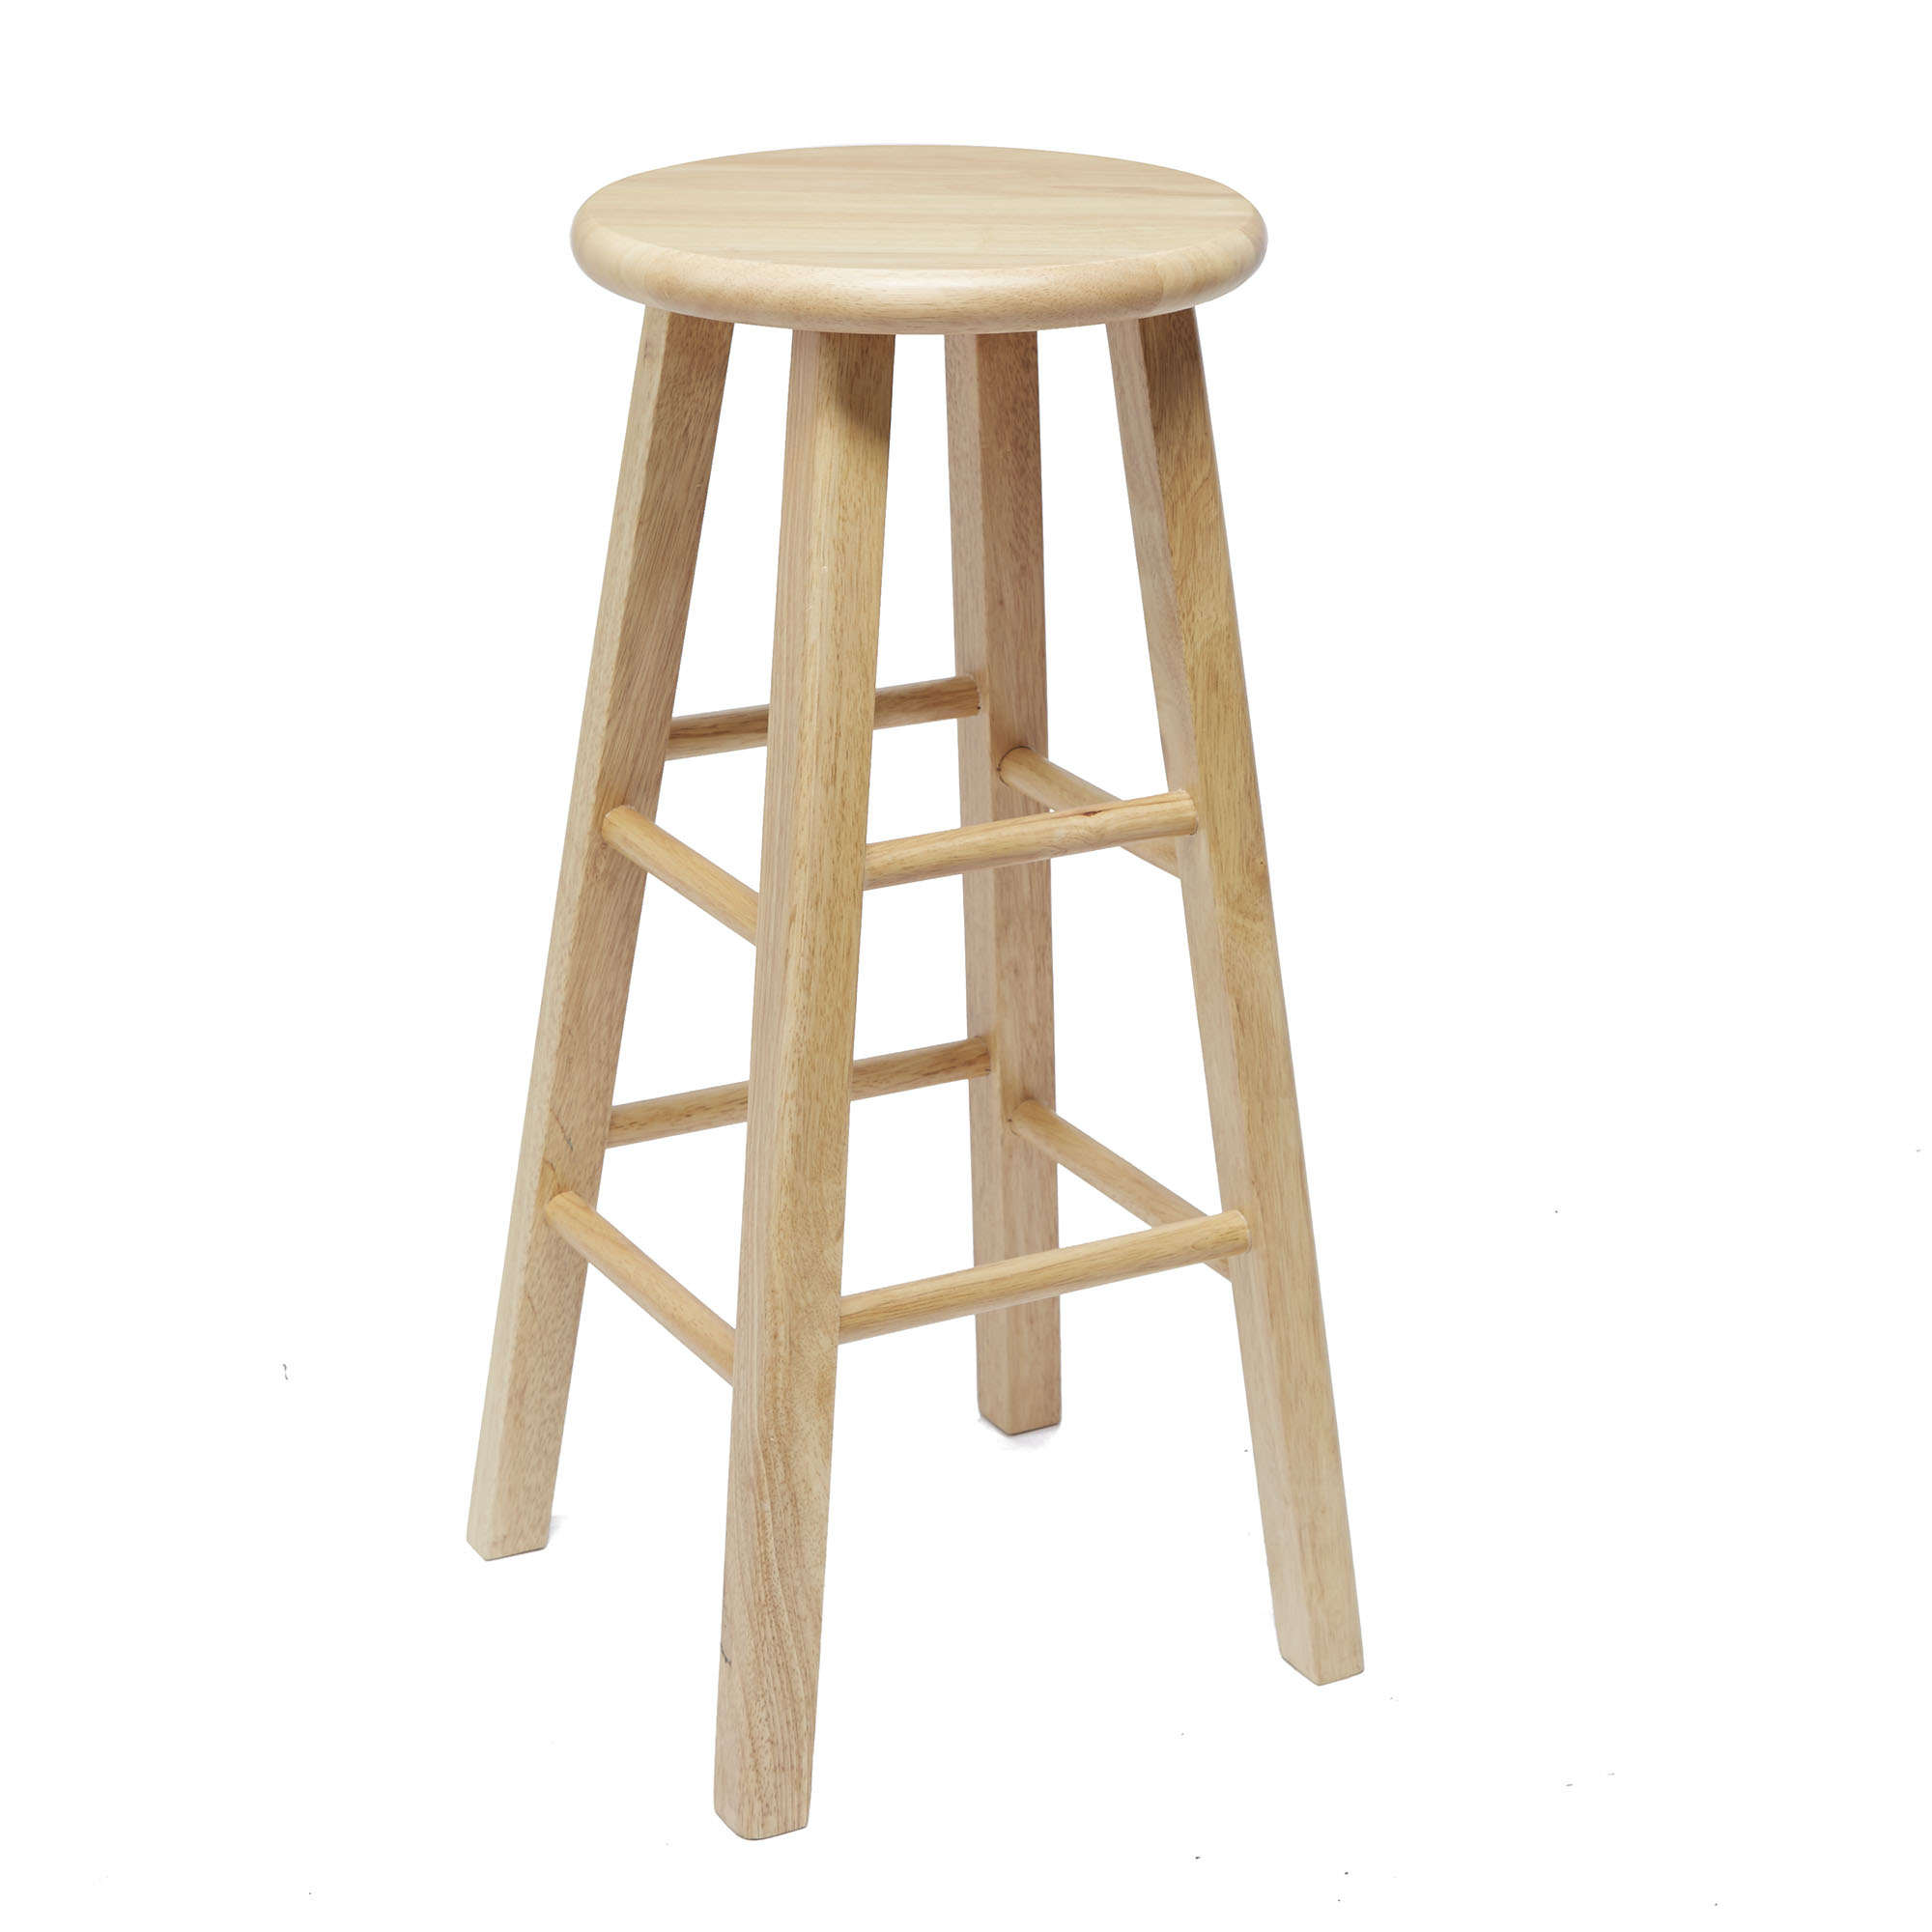 Barstool Set Of 4 Wood Bar Stools Solid Dinning Clic Round 24